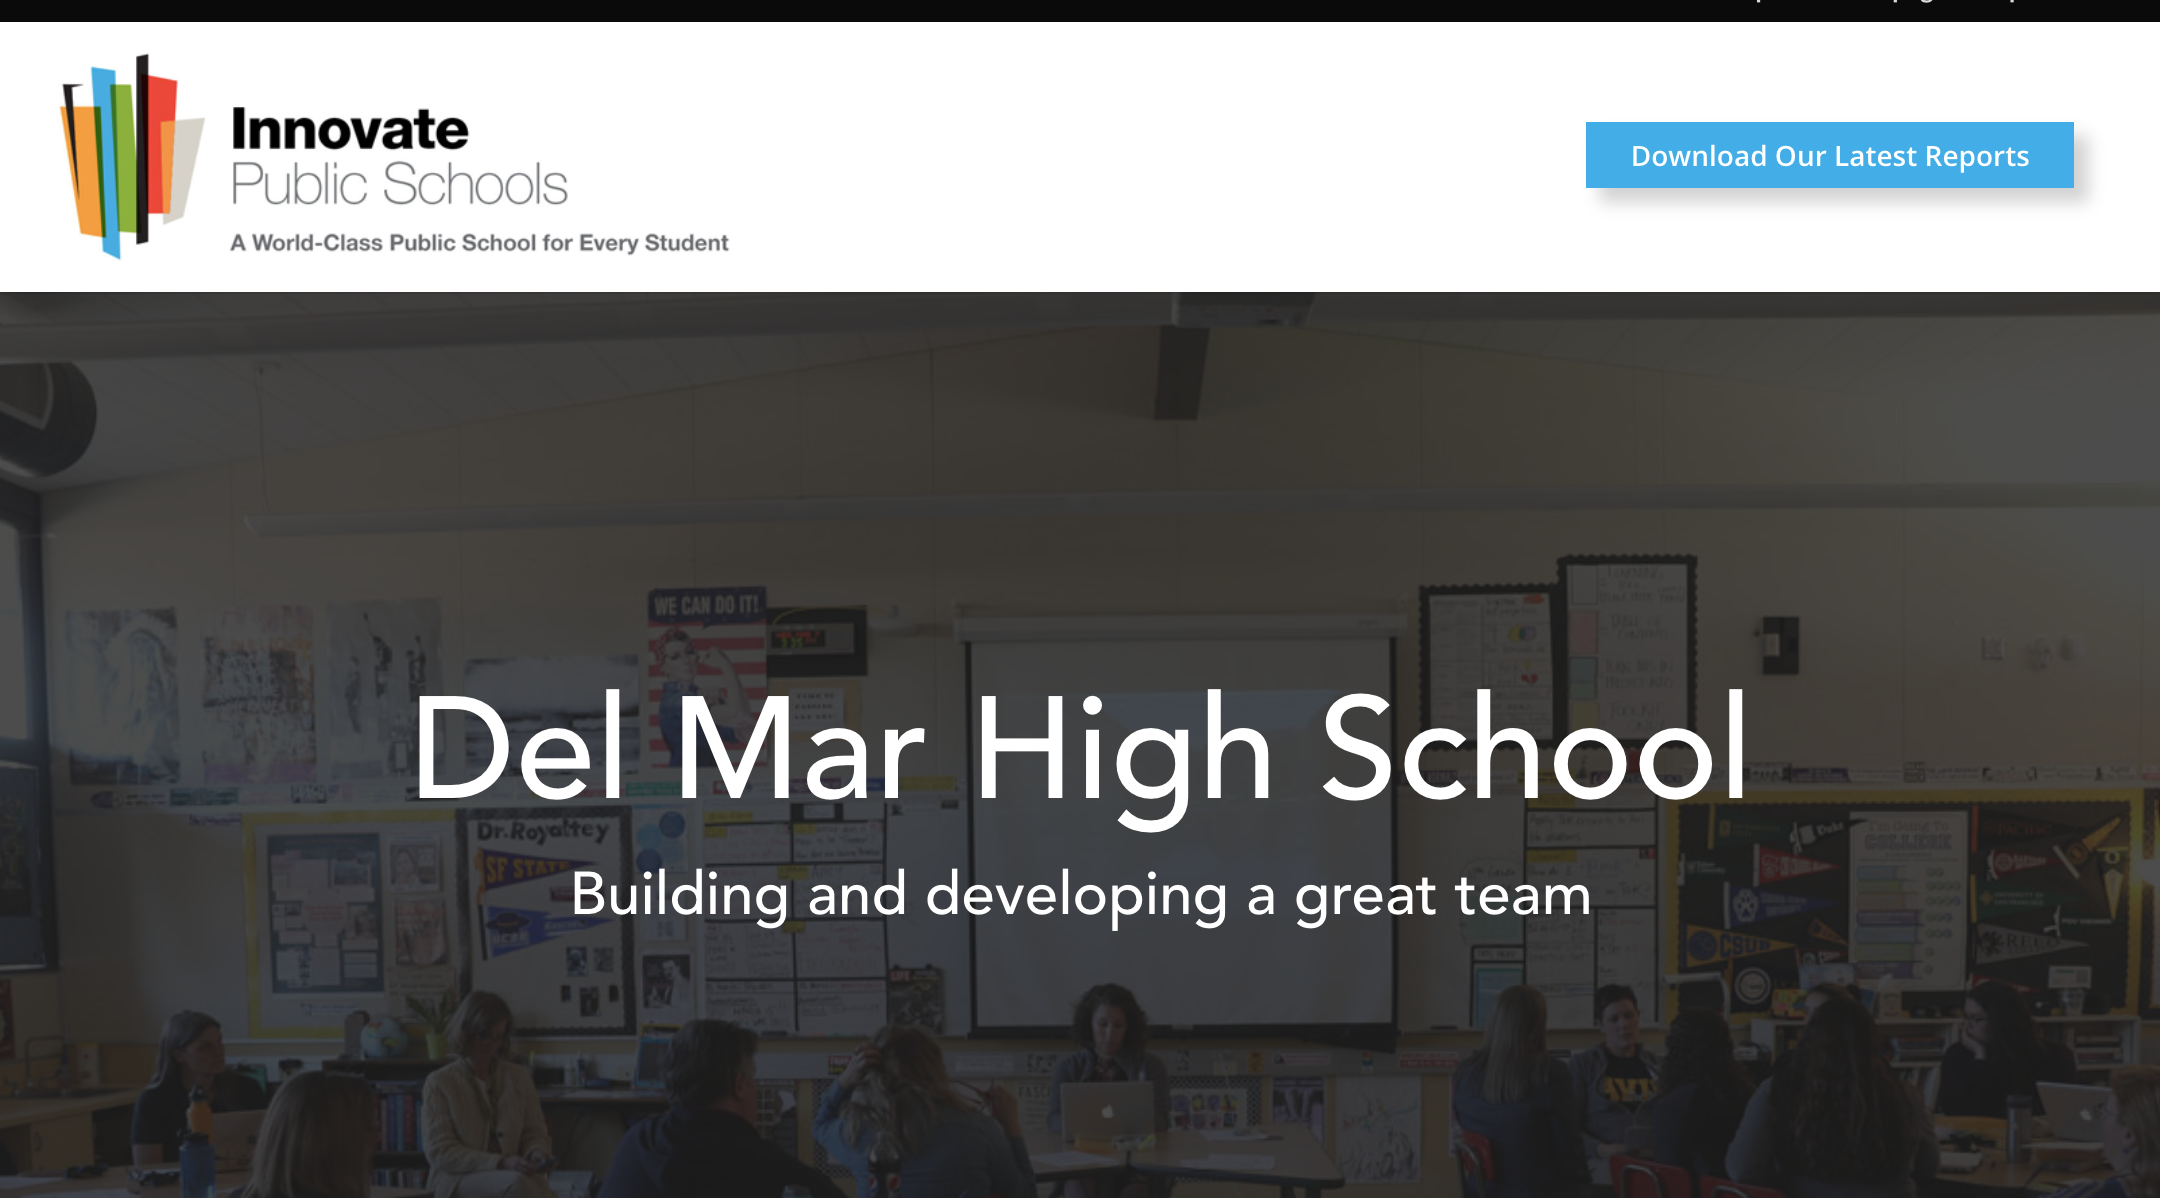 Photo of Del Mar featured as a top performing school on Innovate Public Schools website